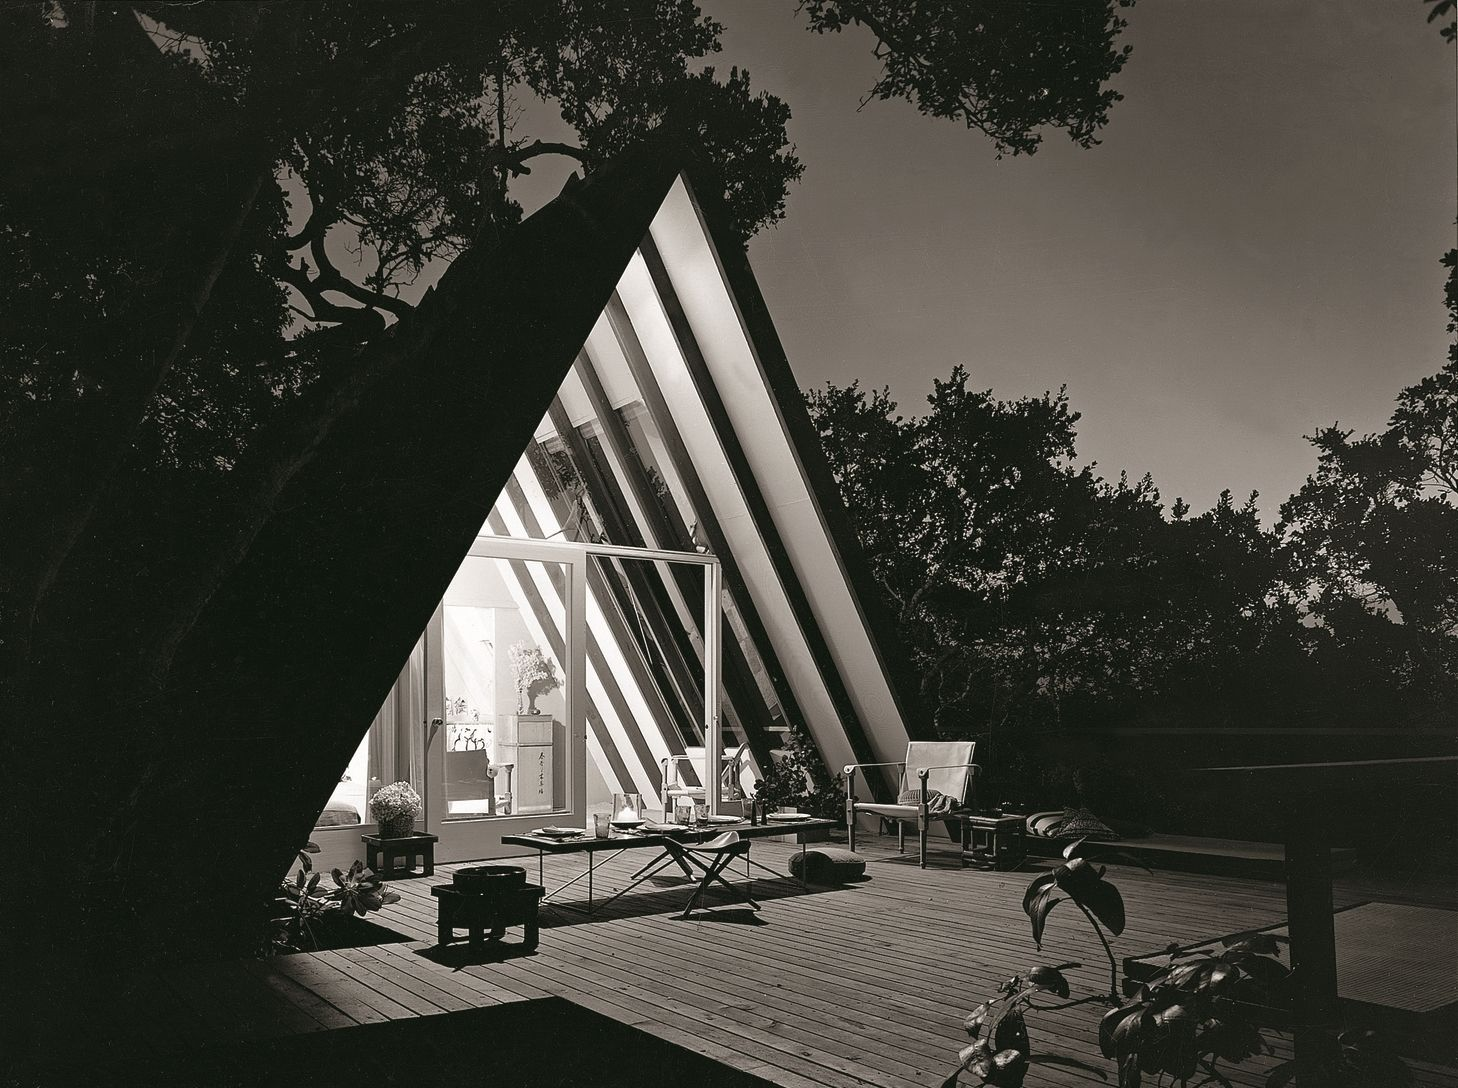 Bring back the real A-frame, \